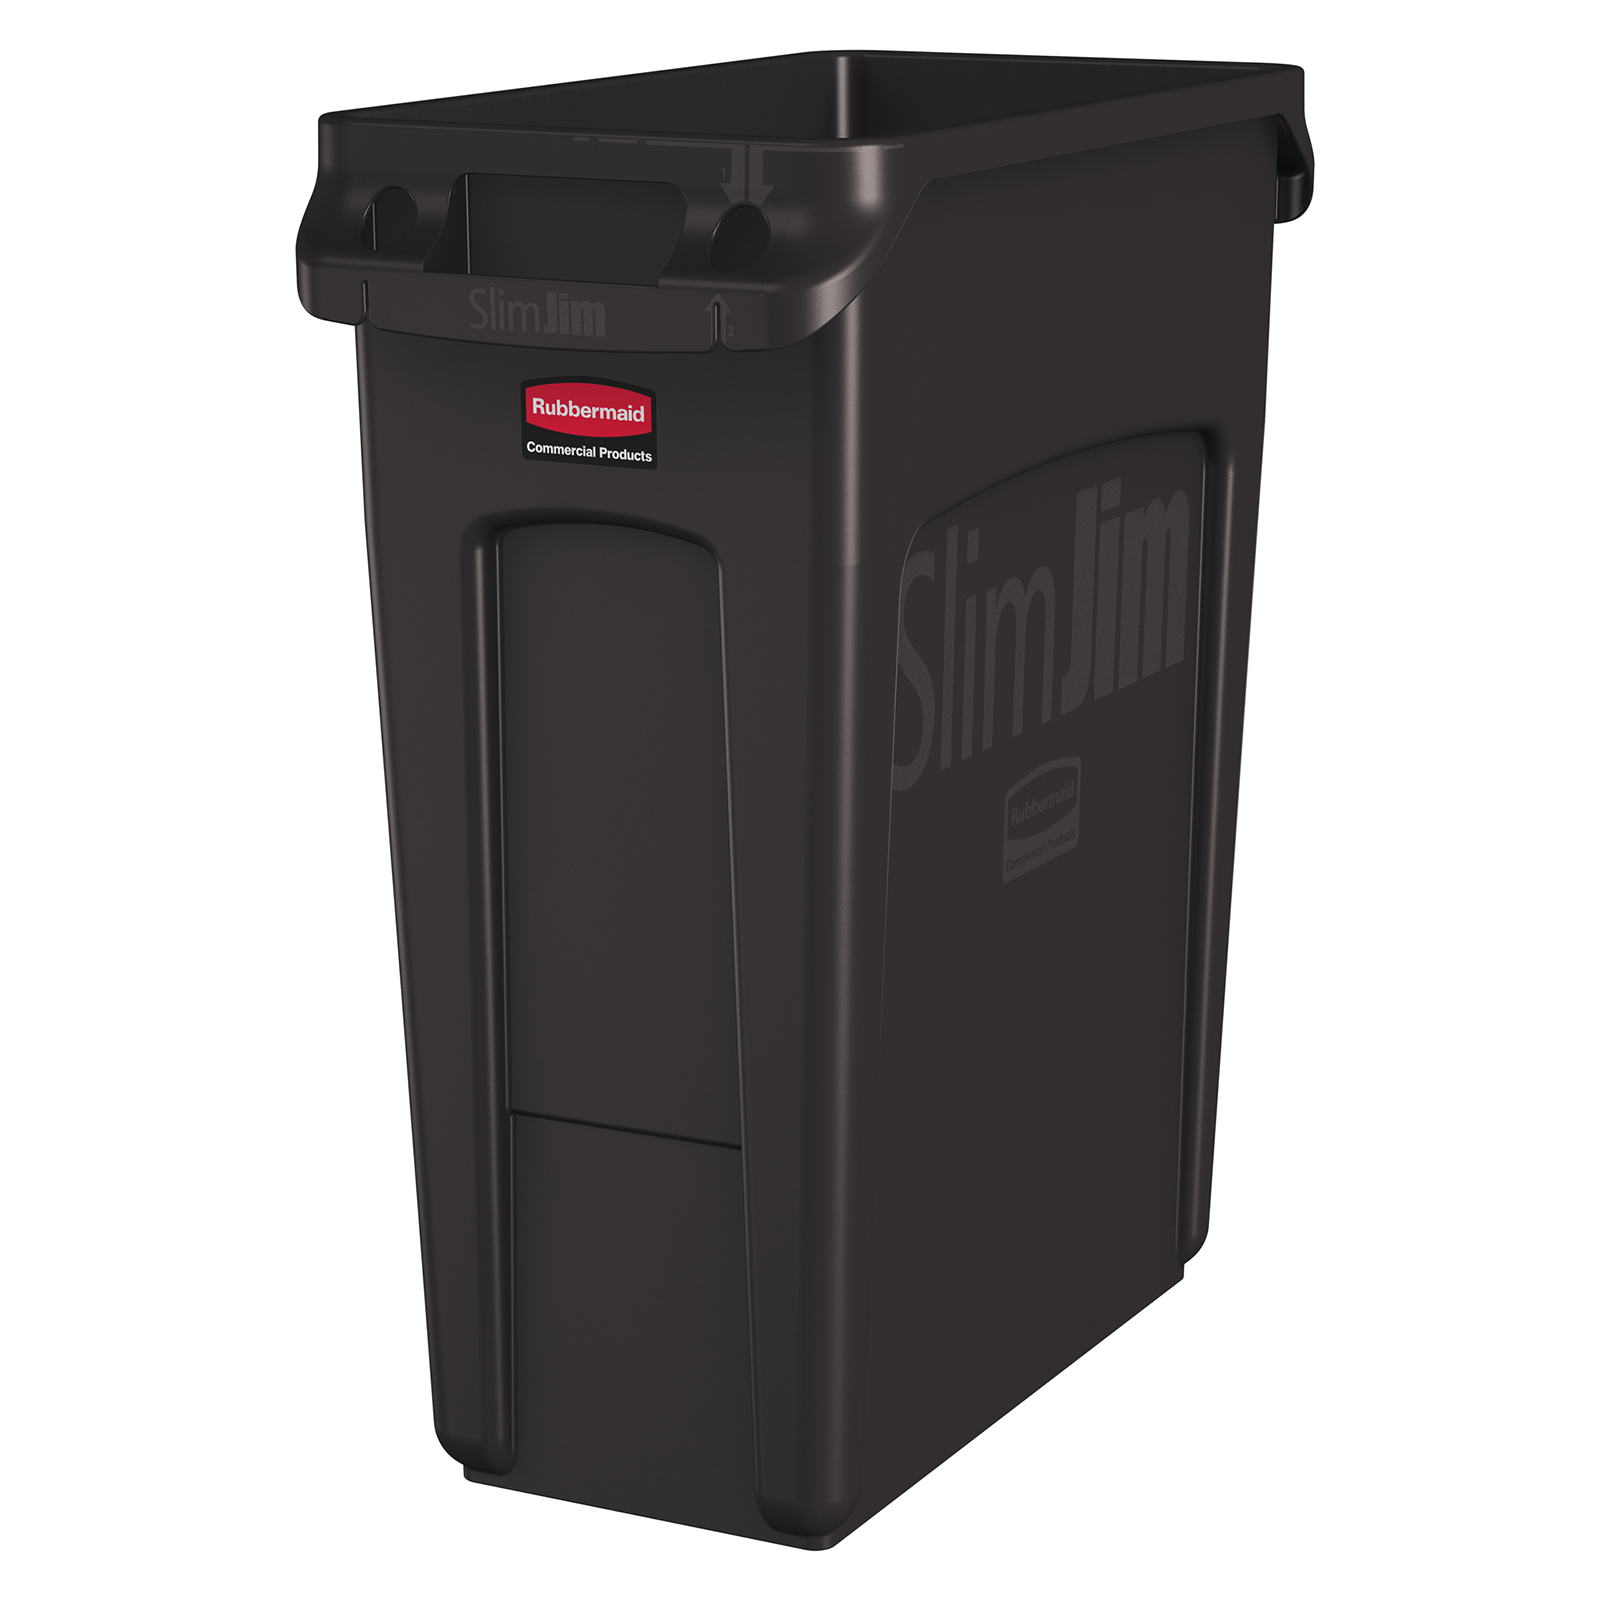 Rubbermaid Commercial Products 1956181 trash receptacle, indoor